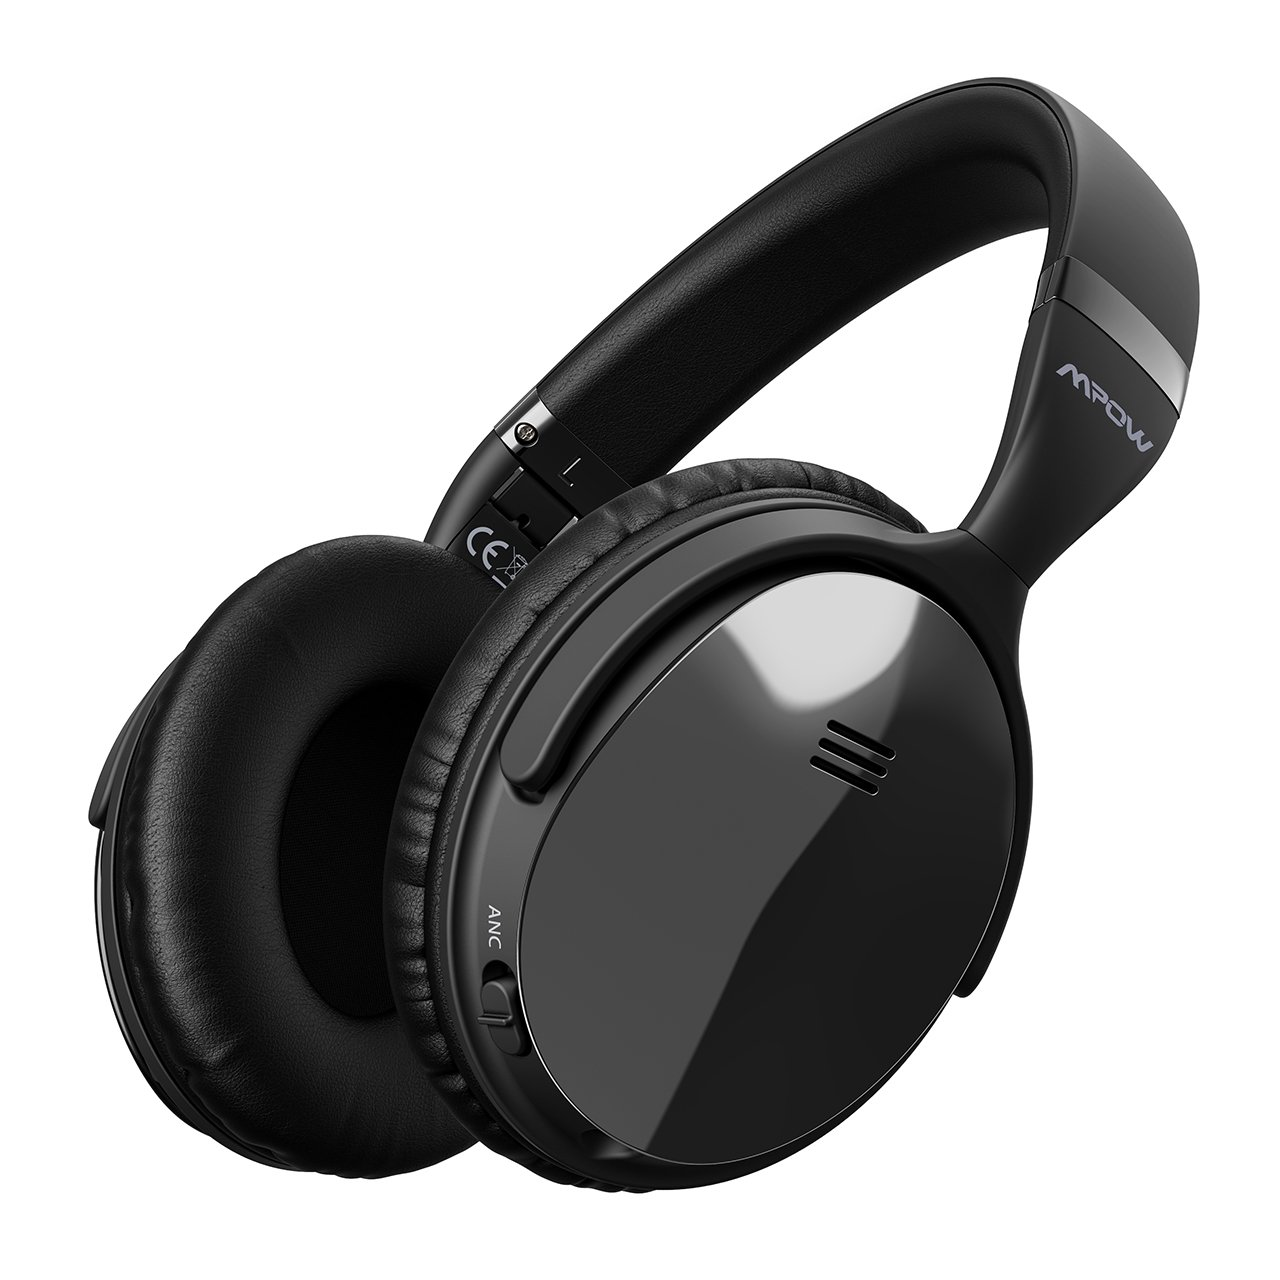 Mpow H5 Upgrade Active Noise Cancelling Headphones, ANC Over Ear Bluetooth Wireless Headphones with Mic, Comfortable Protein Earpads, Hands-Free Call, 30 Hours Playtime for Travel Work Computer Home